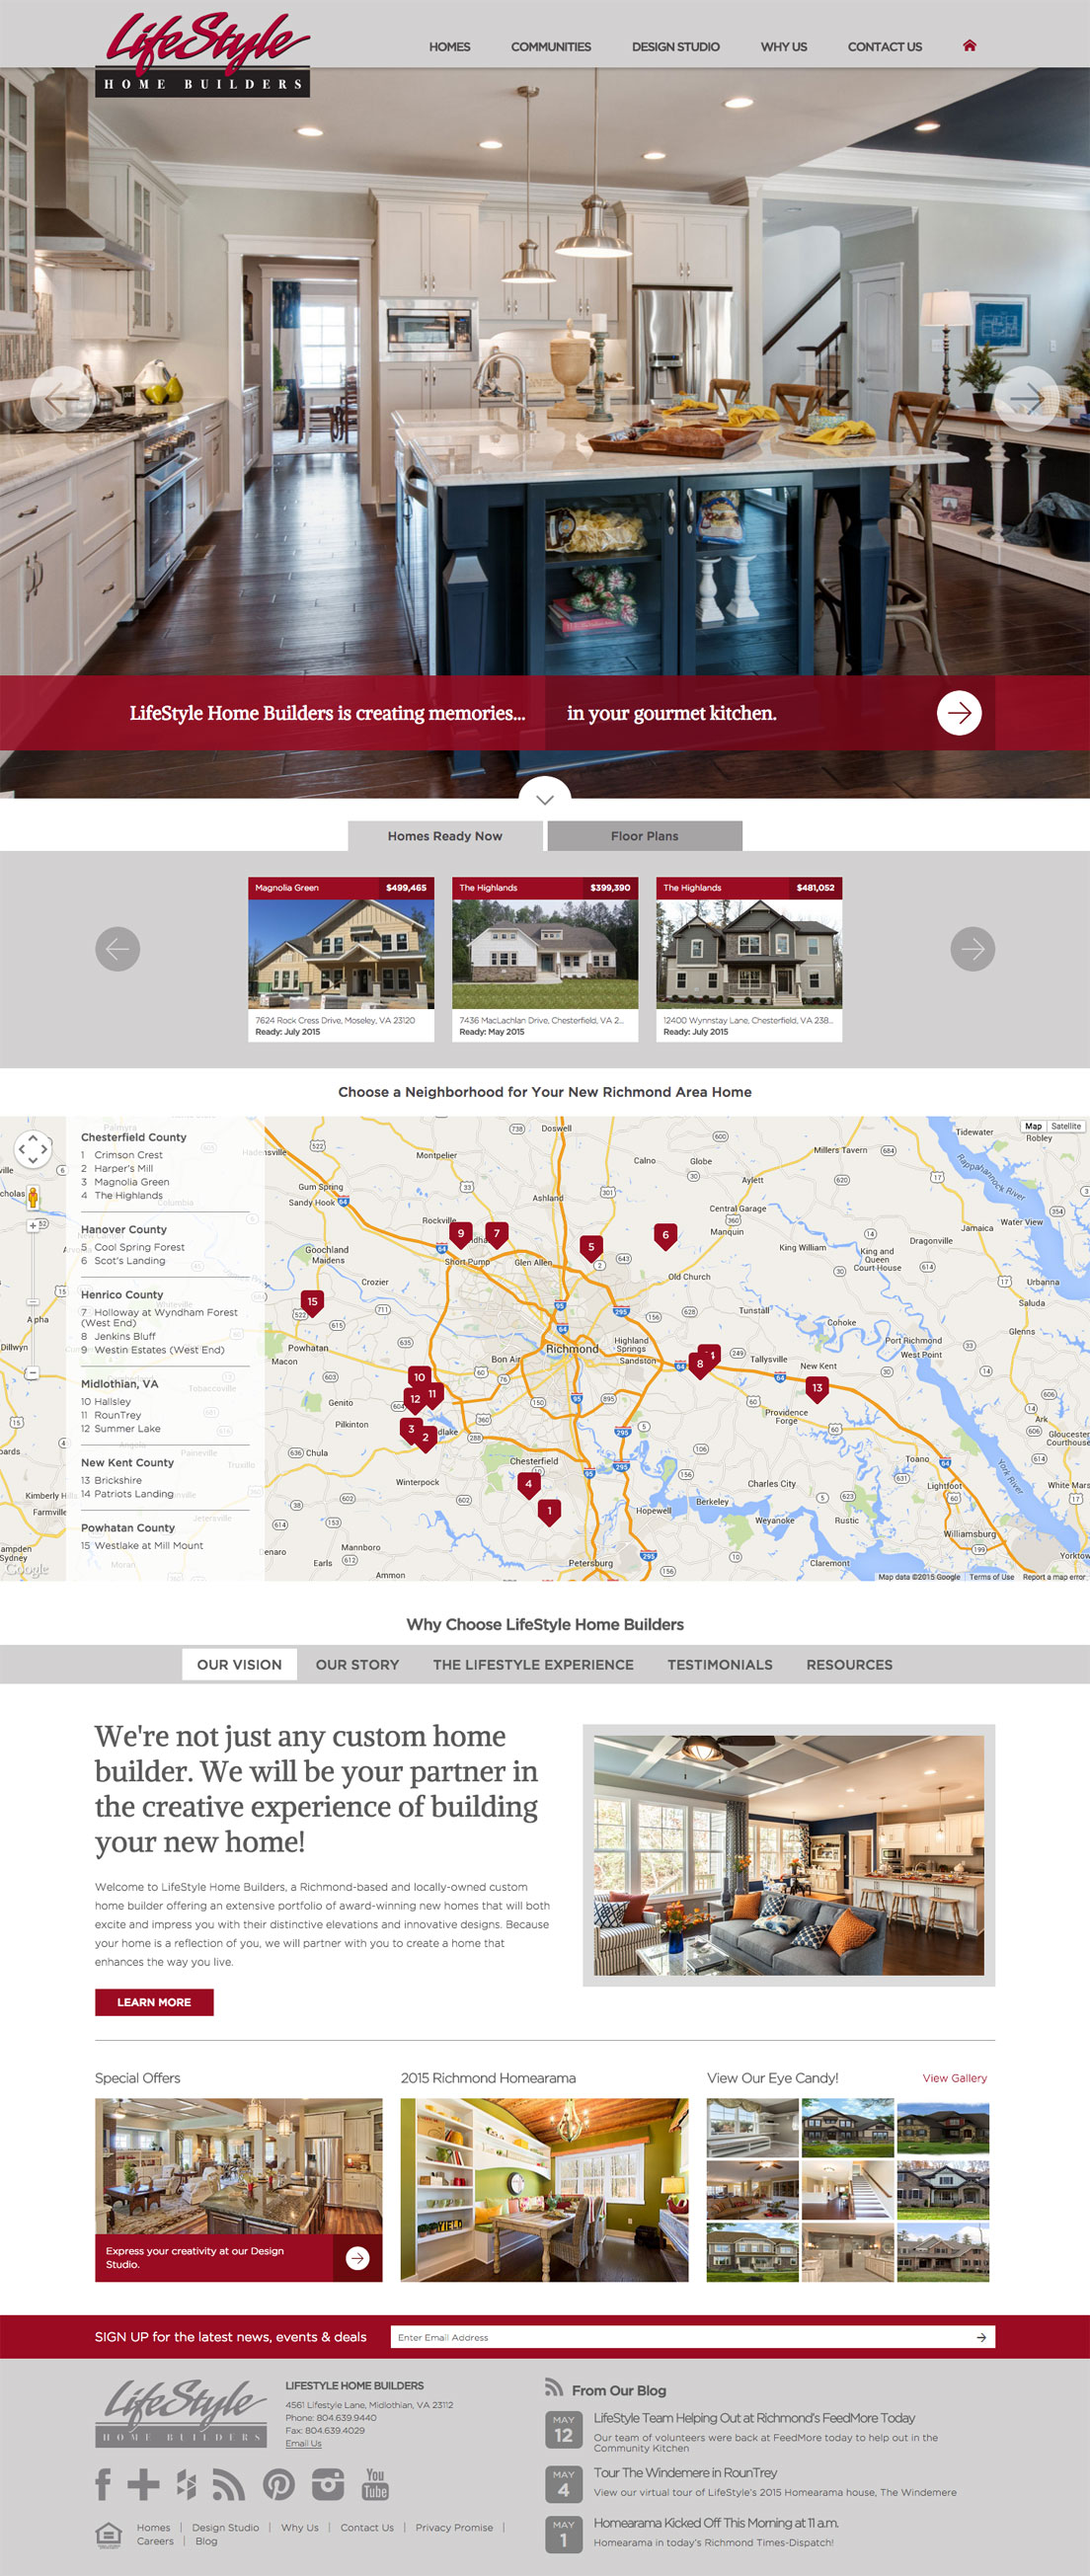 Website Design & SEO for Lifestyle Home Builders